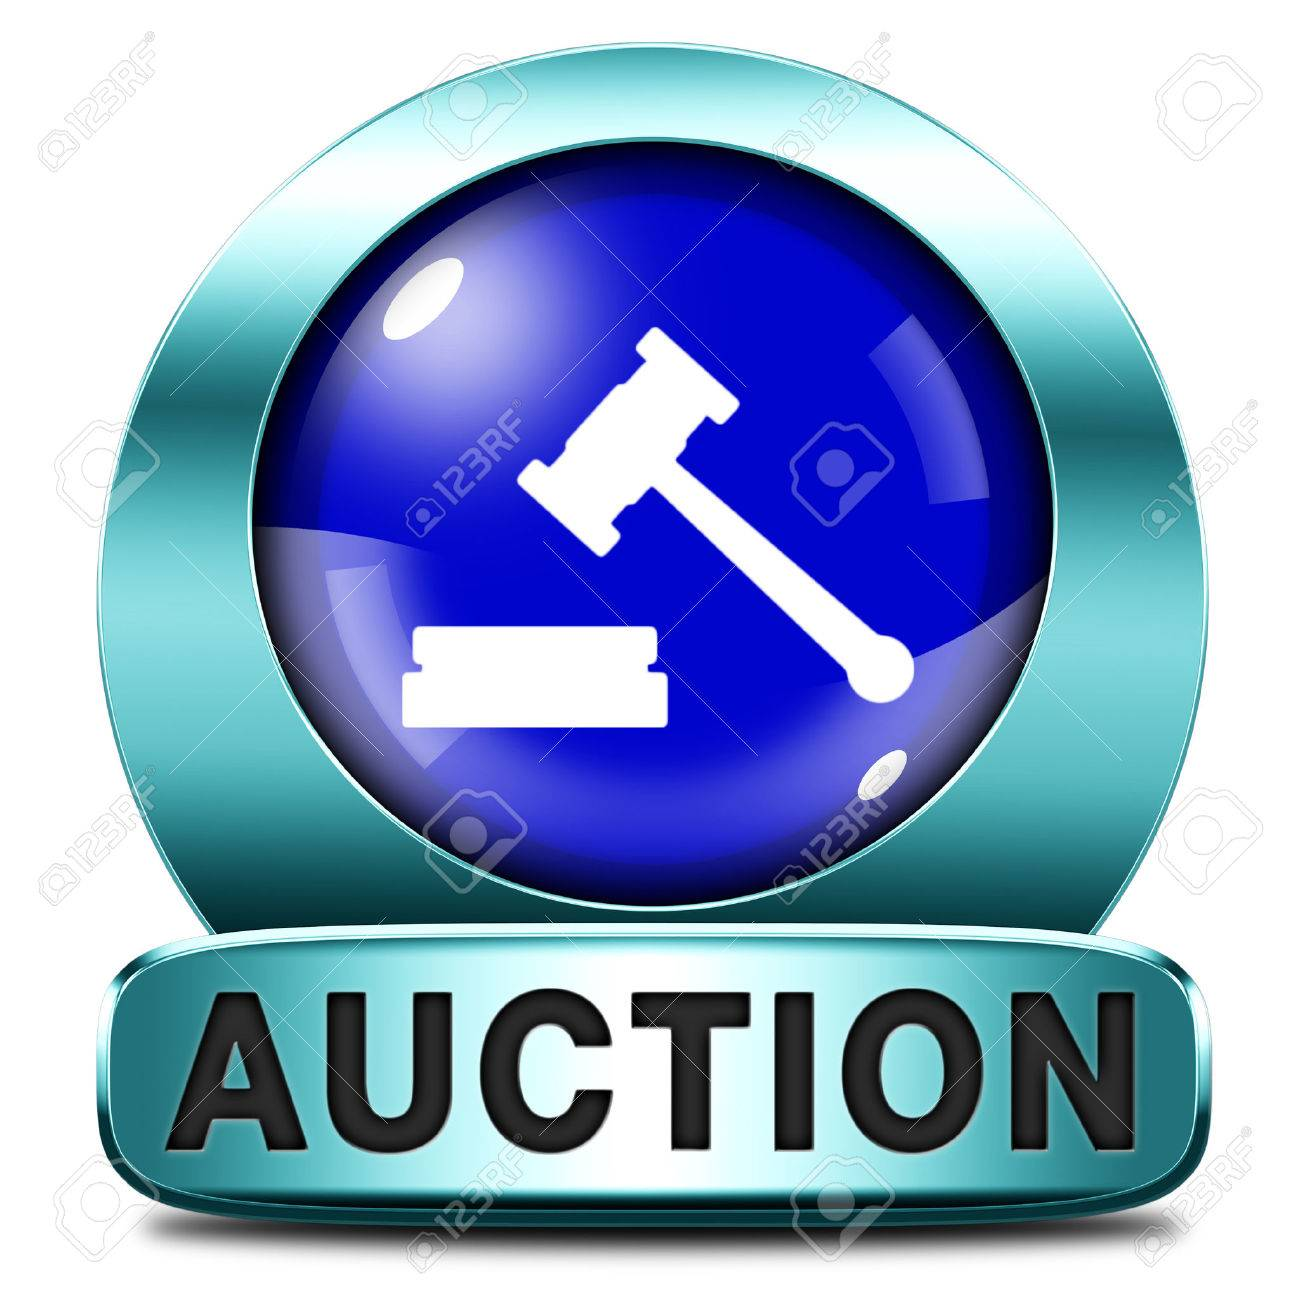 Auction Sign Online Sale Bidding And Buying Real Estate Cars